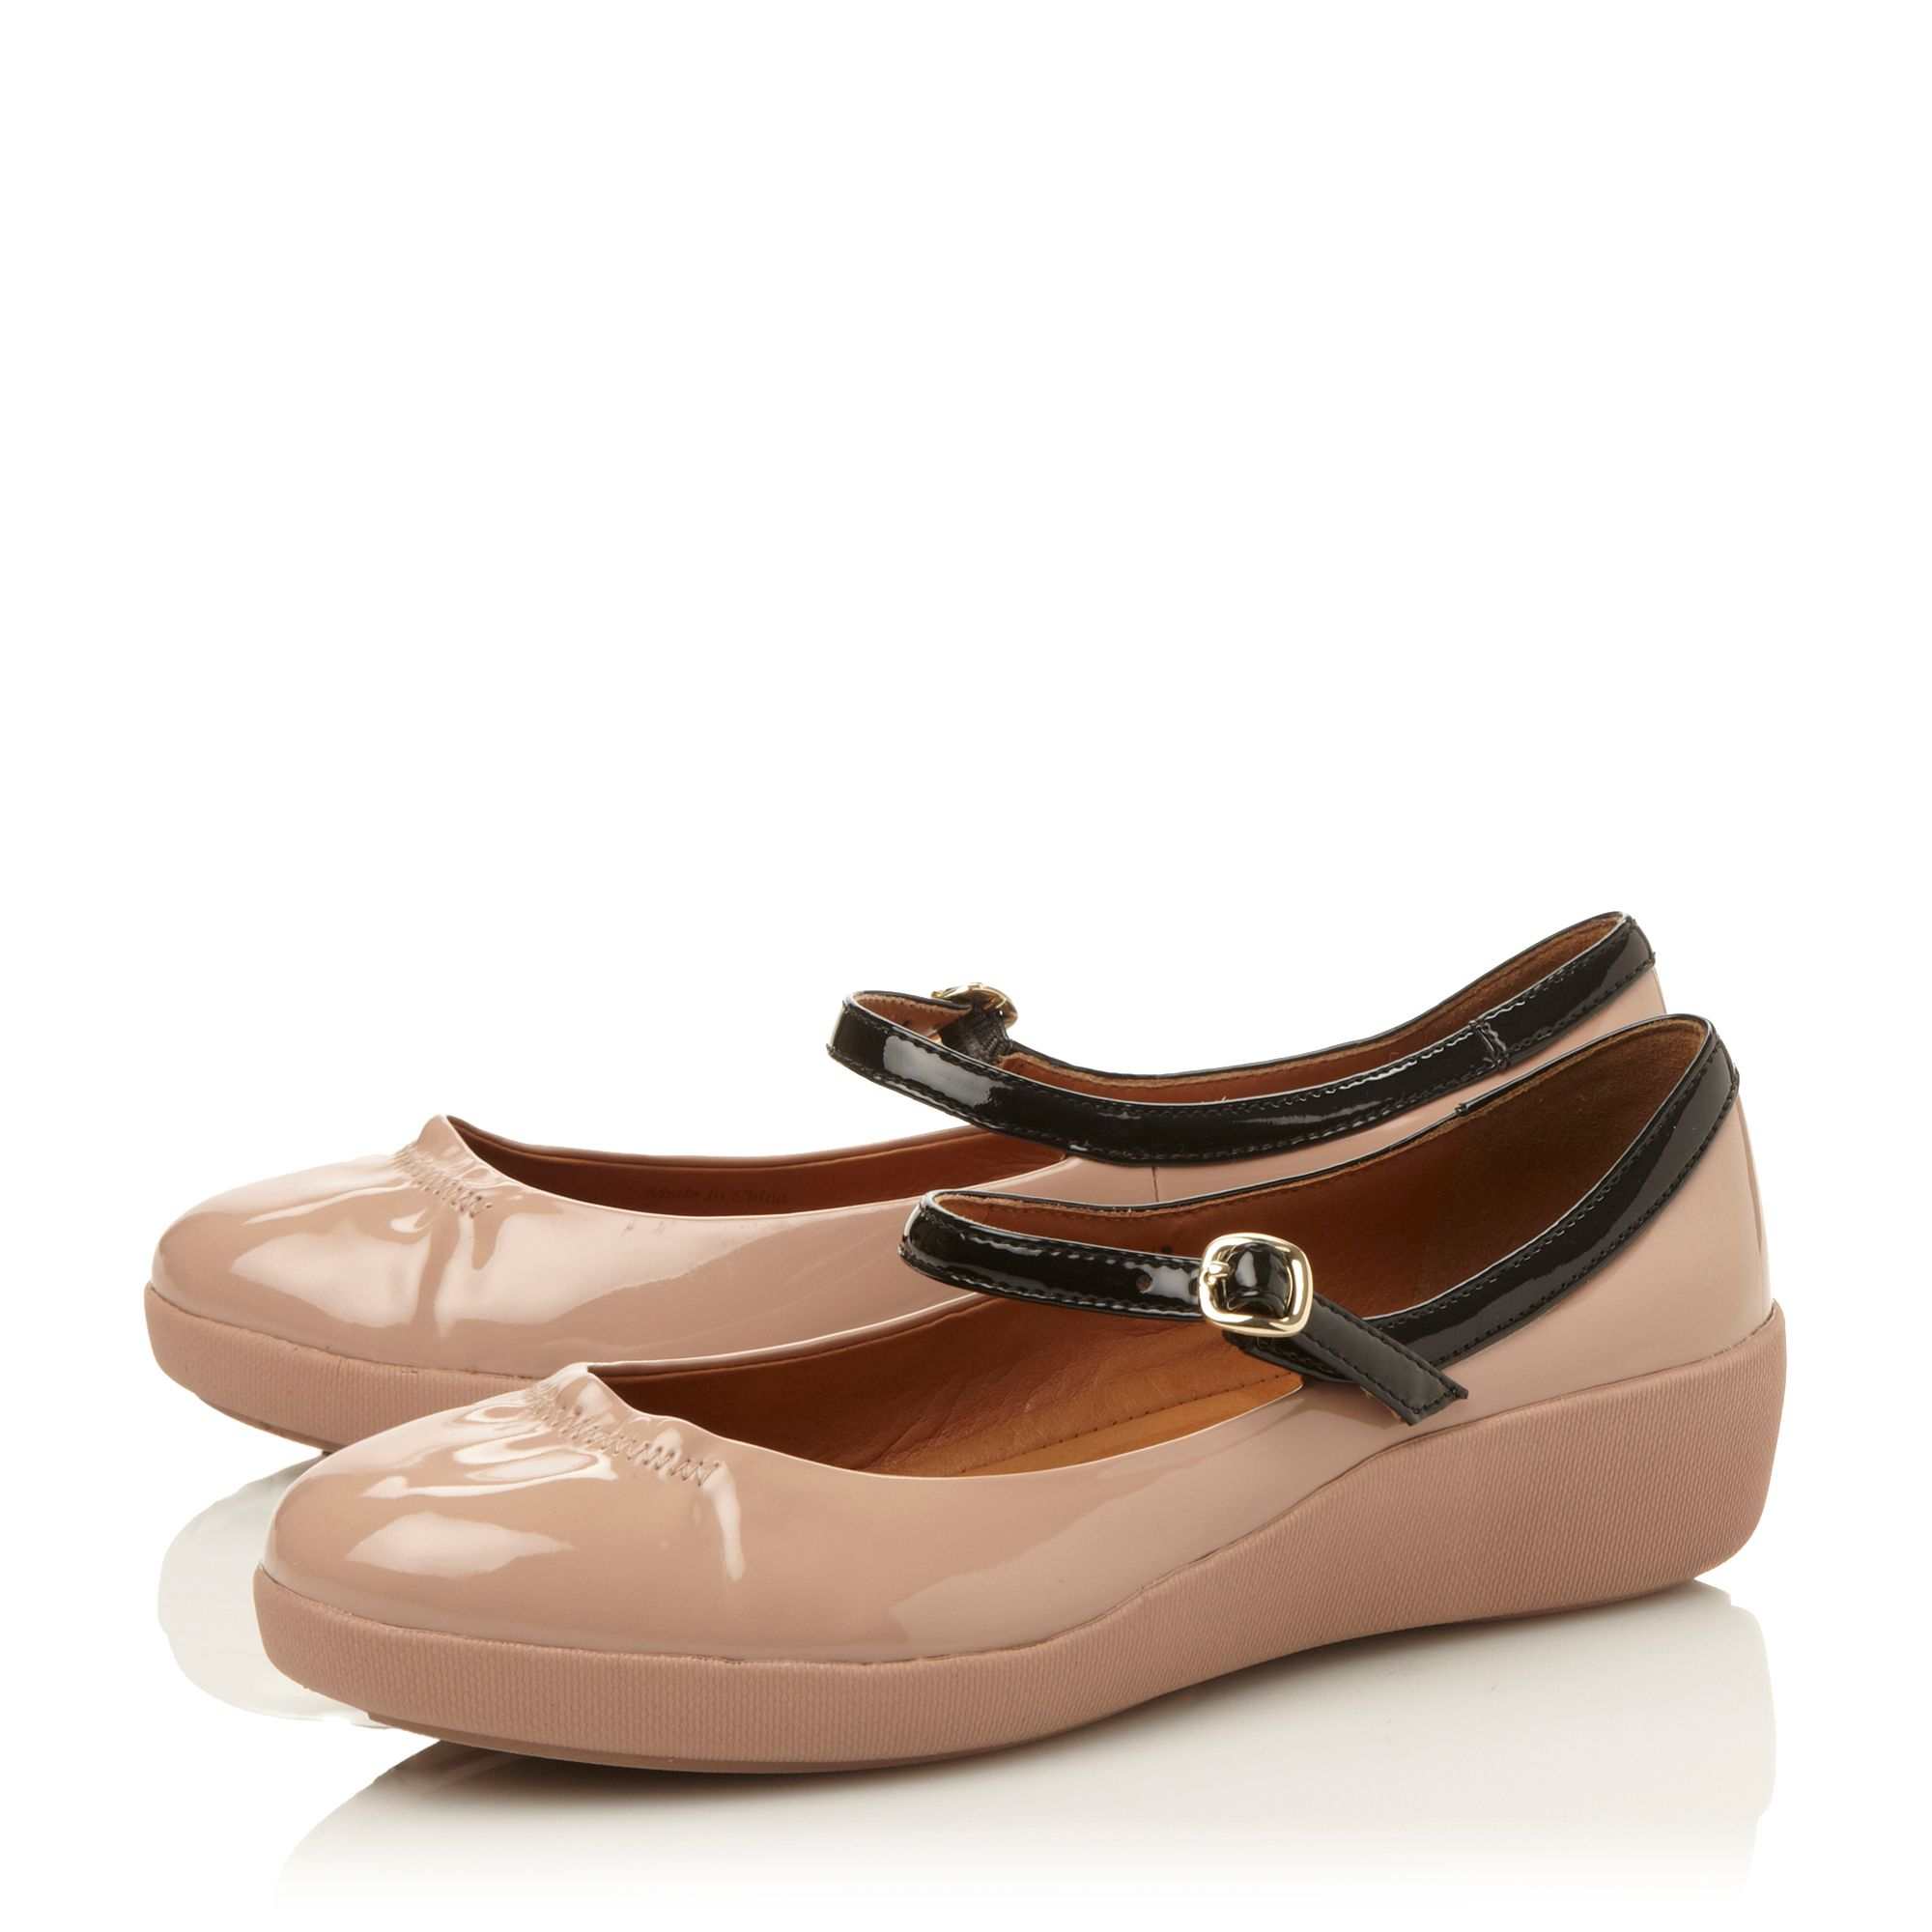 ace6173cee707d Fitflop F Pop Mary Jane Ballerina Shoes